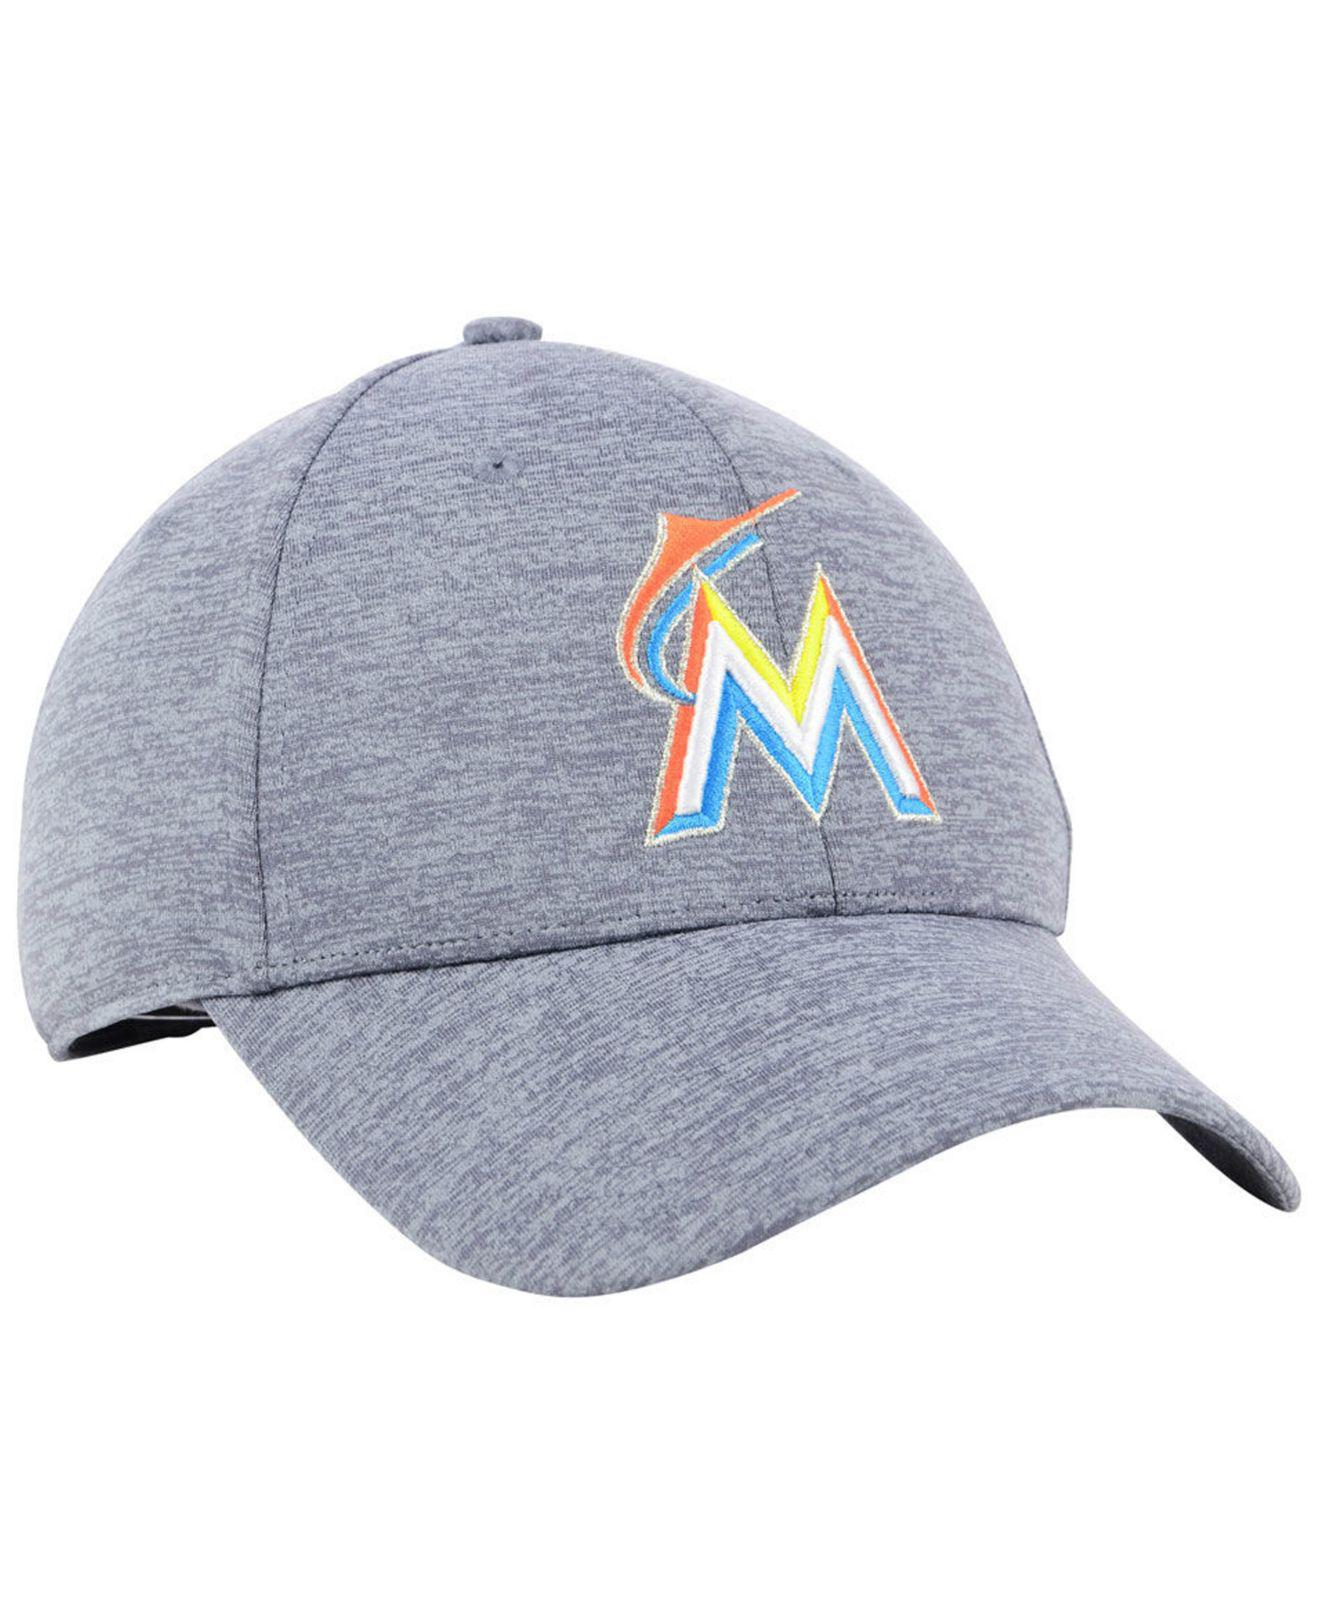 free shipping b955f aadb4 ... discount code for lyst under armour miami marlins twist closer cap in  gray for men 94c27